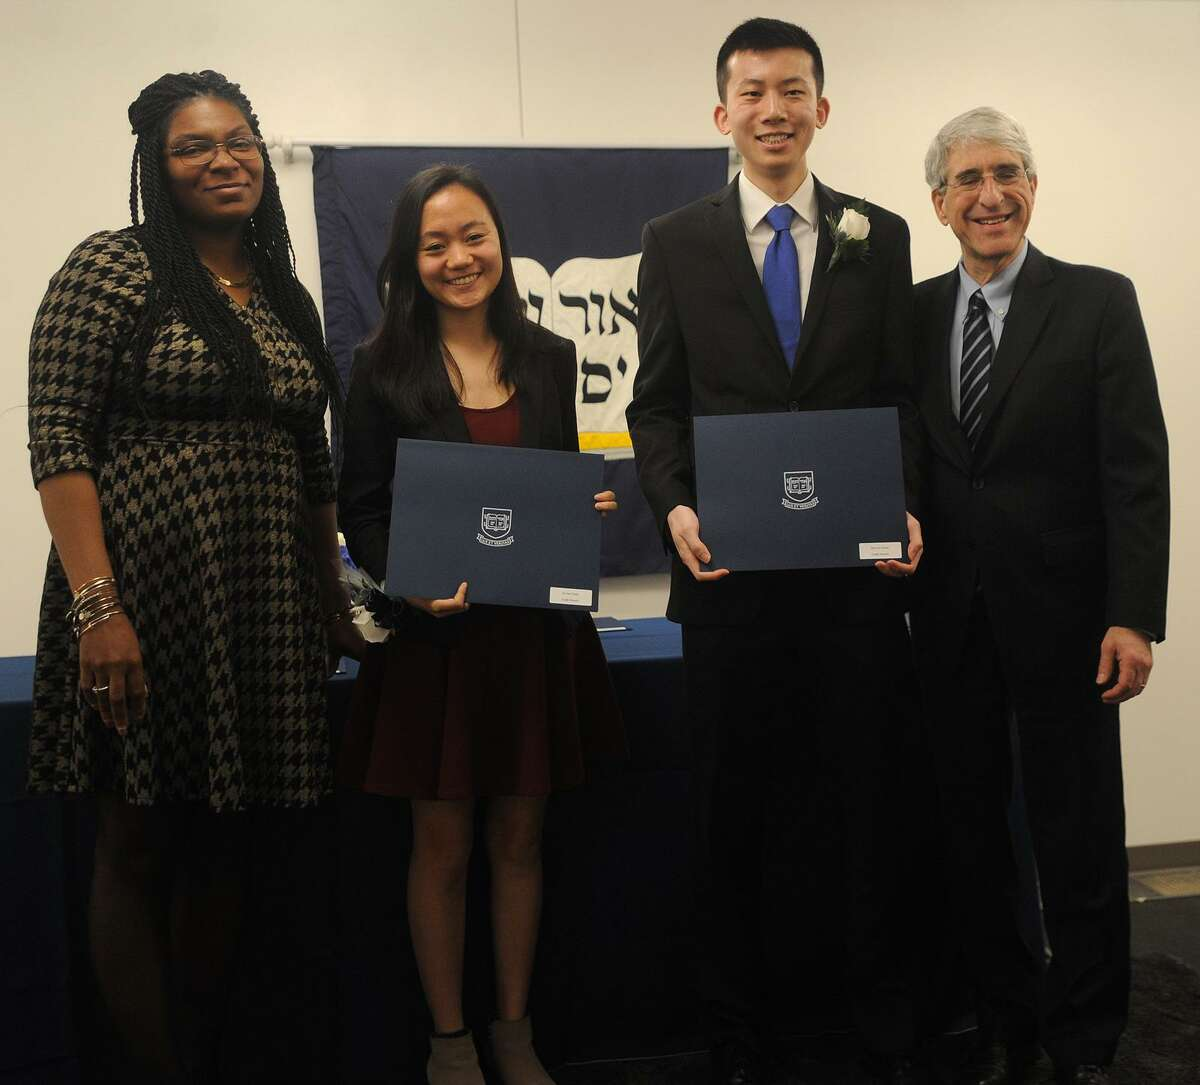 From left; New Haven Board of Alders President Tyisha Walker-Myers, Undergraduate Ivy Award recipients Annie Chen and Dennis Duan, of Code Haven, and Yale University President Peter Salovey pose for a photo during the annual Seton Elm-Ivy Awards at Yale on York in New Haven, Conn. on Wednesday, April 25, 2018. Yale students in Code Haven teach computing skills at several New Haven schools.